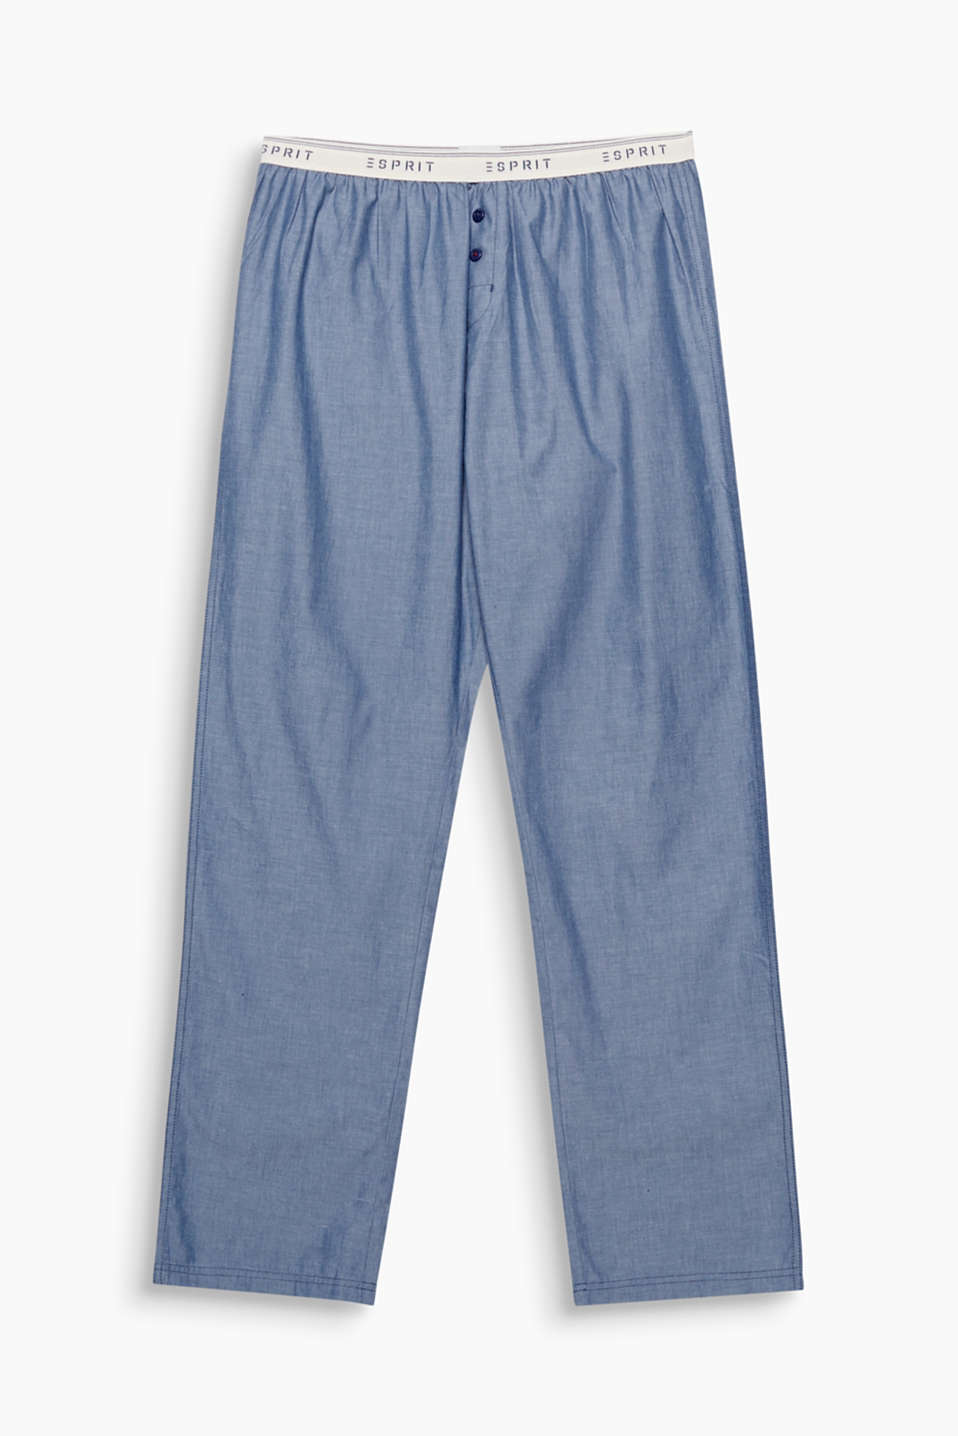 It doesn't always have to be a pattern: These pyjama bottoms look casual yet modern thanks to their chambray fabric!